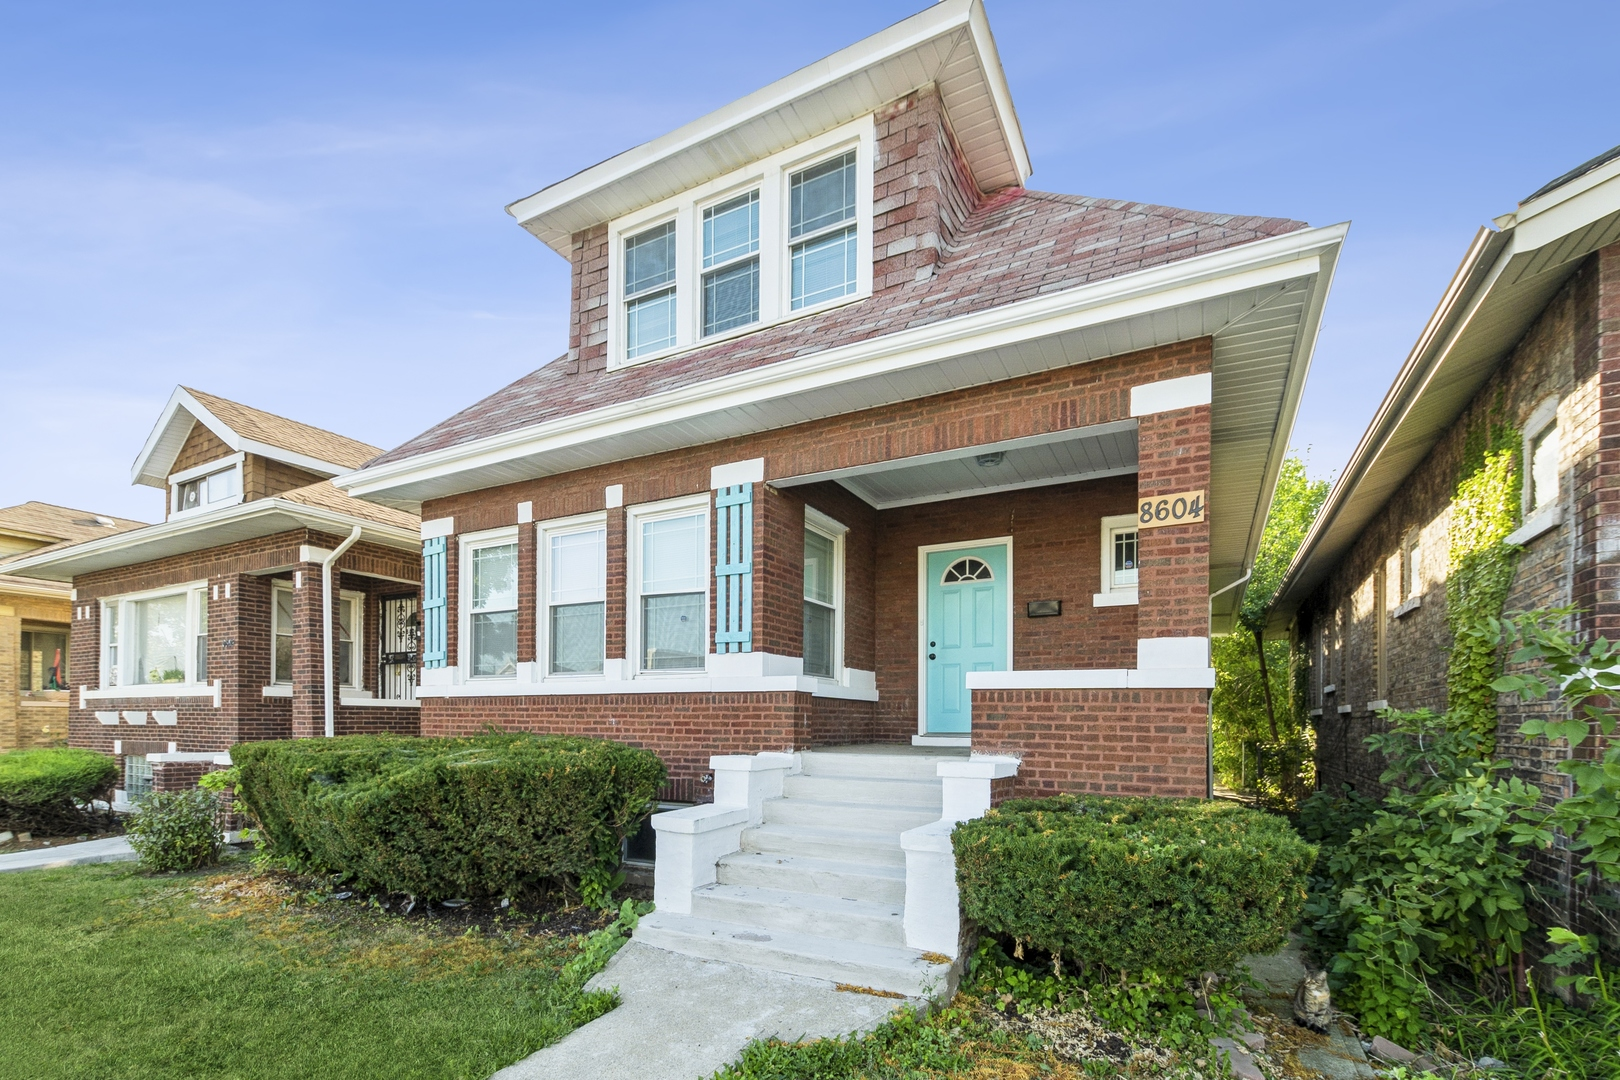 Photo of 8604 S Loomis Boulevard, Chicago, IL 60620